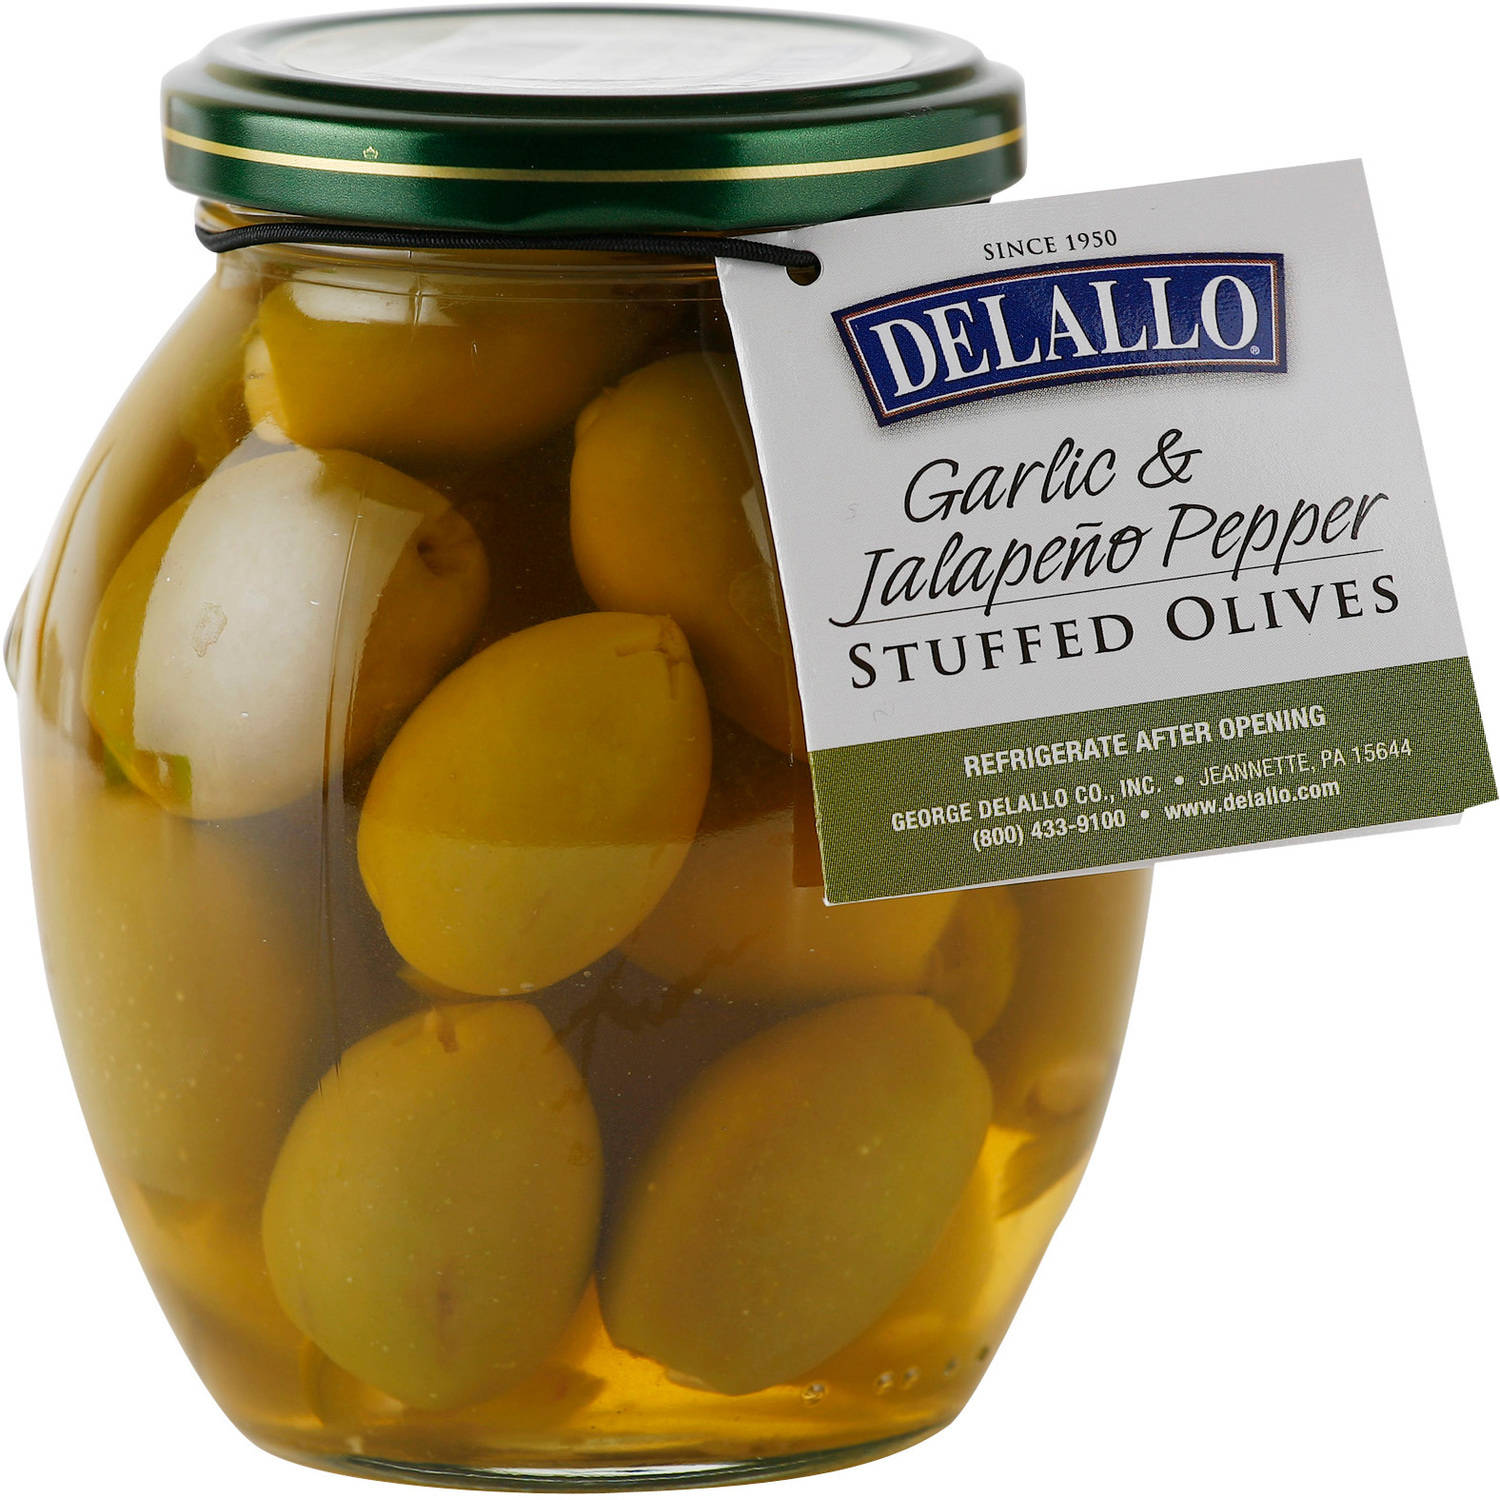 DeLallo Garlic & Jalapeno Pepper Stuffed Olives, 7 oz by GEORGE DELALLO CO. INC.